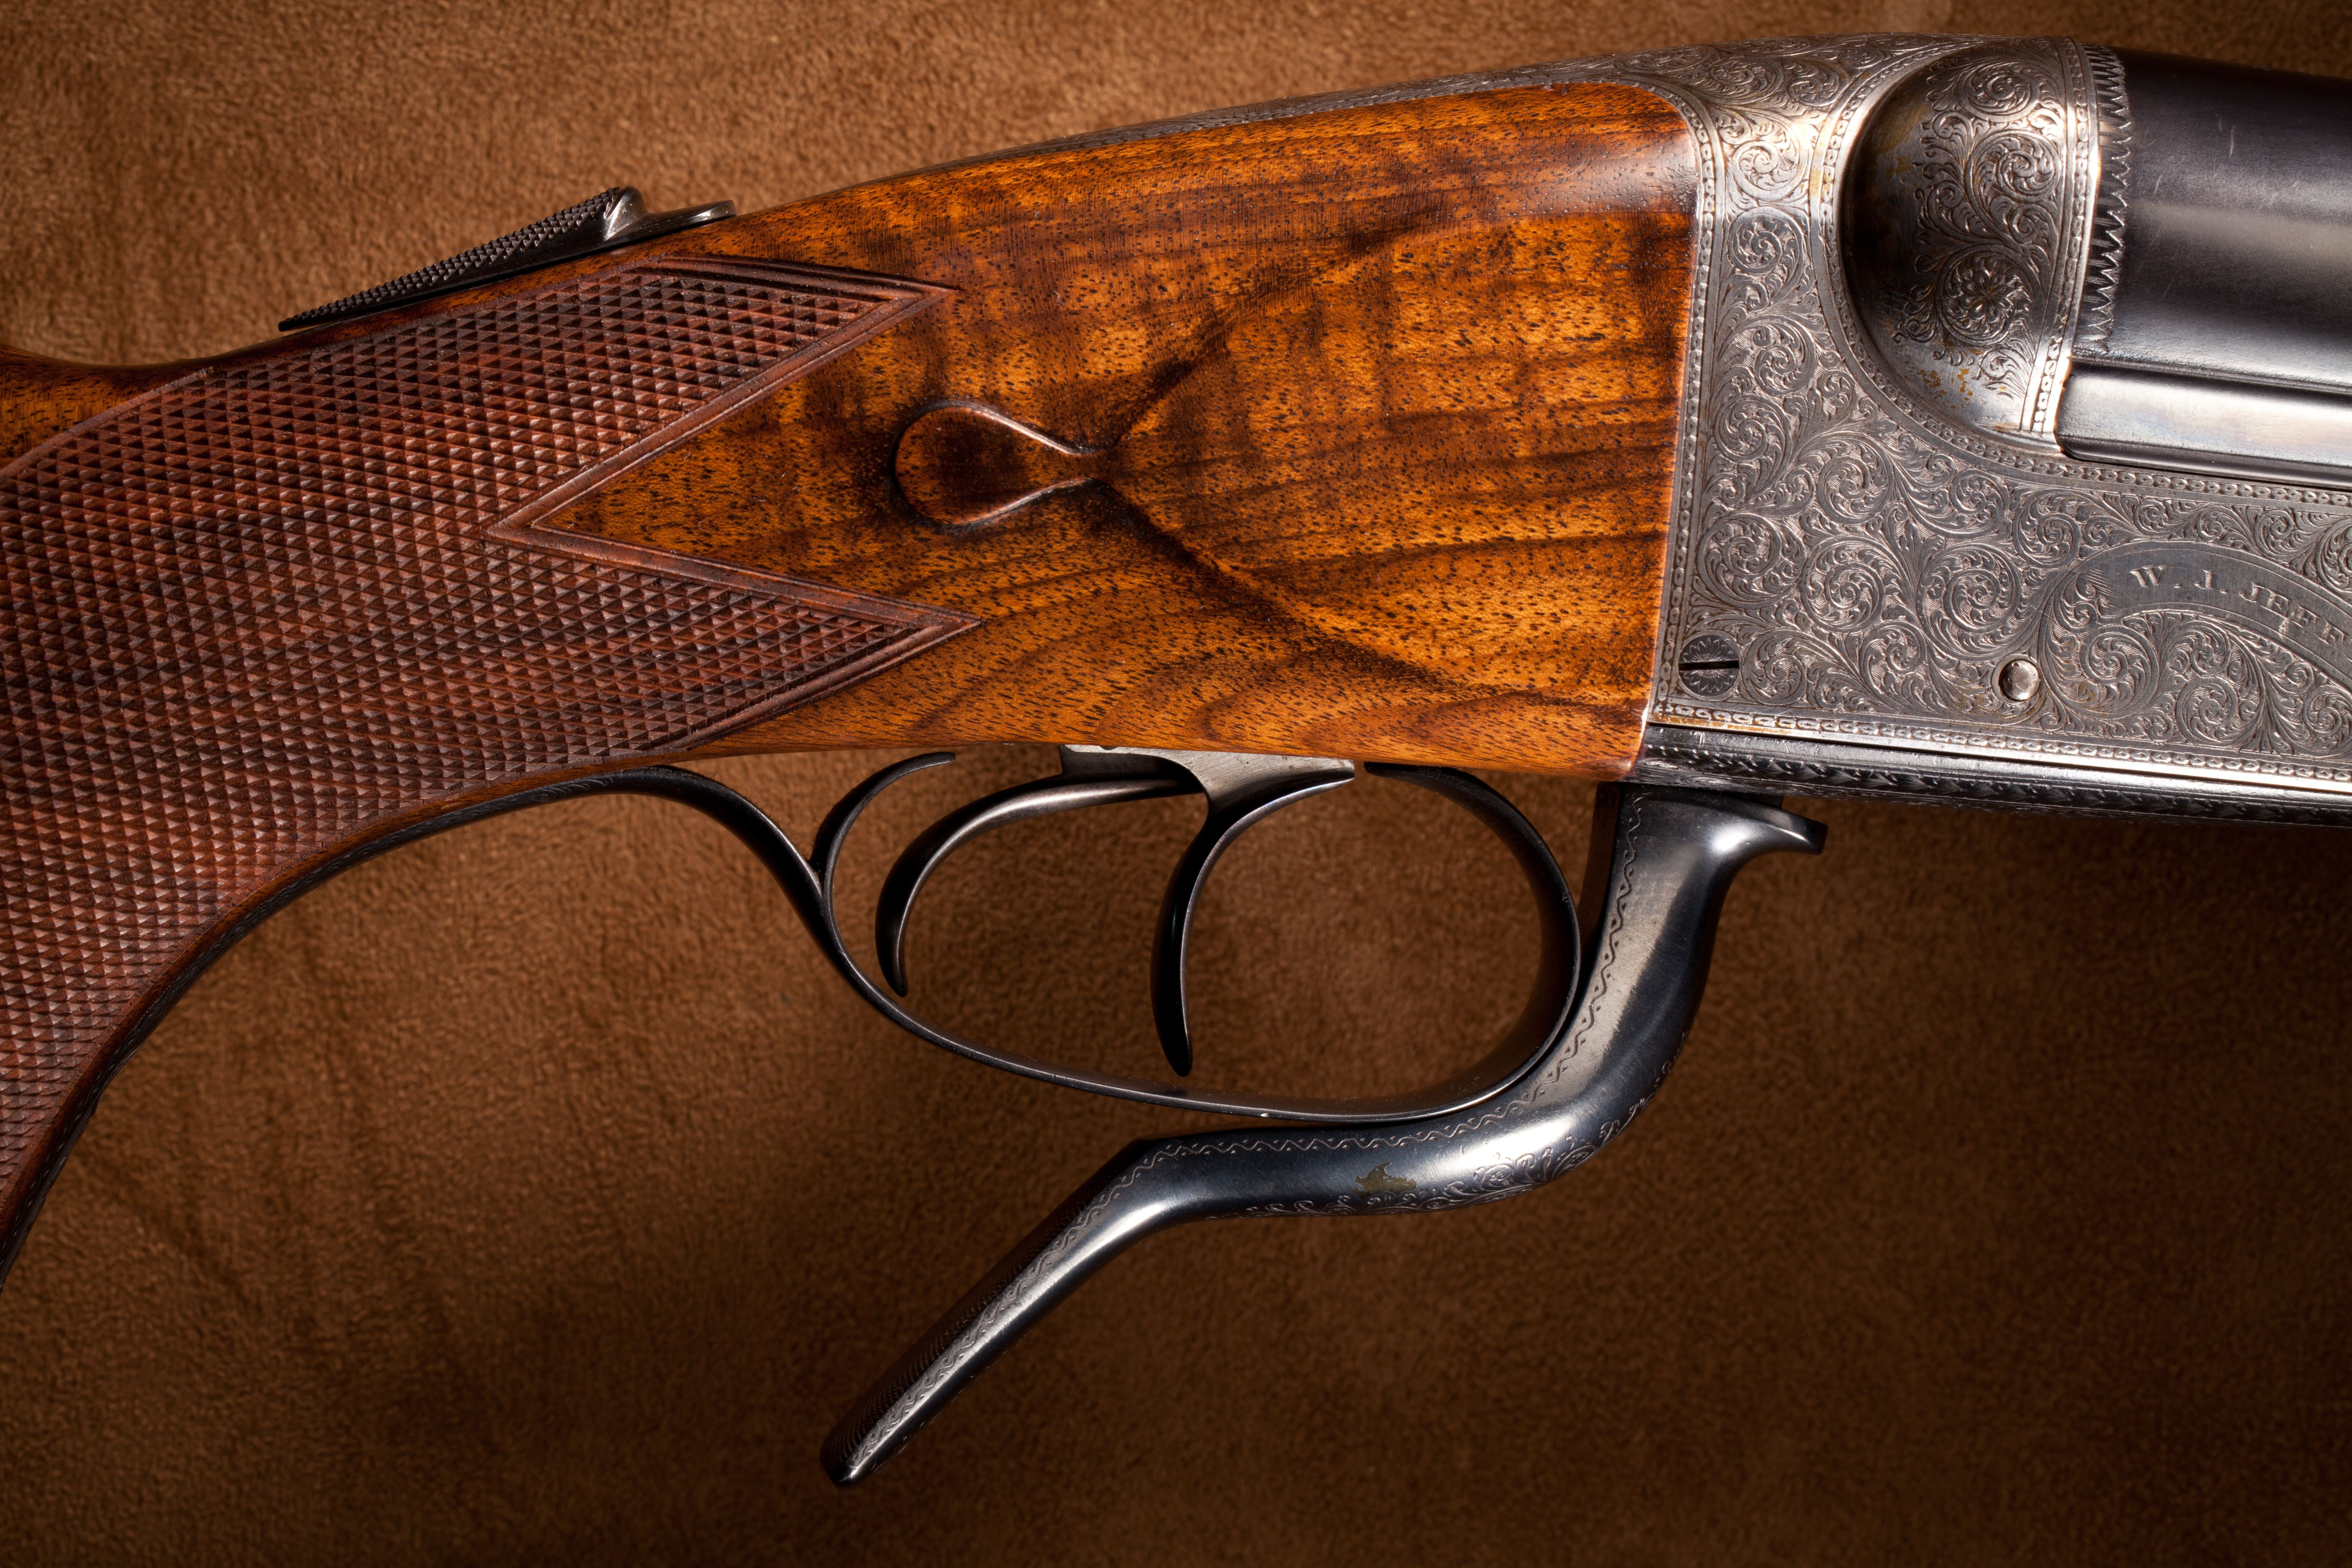 W.J. Jeffery & Company Double Rifle - .600 Nitro Express cal.